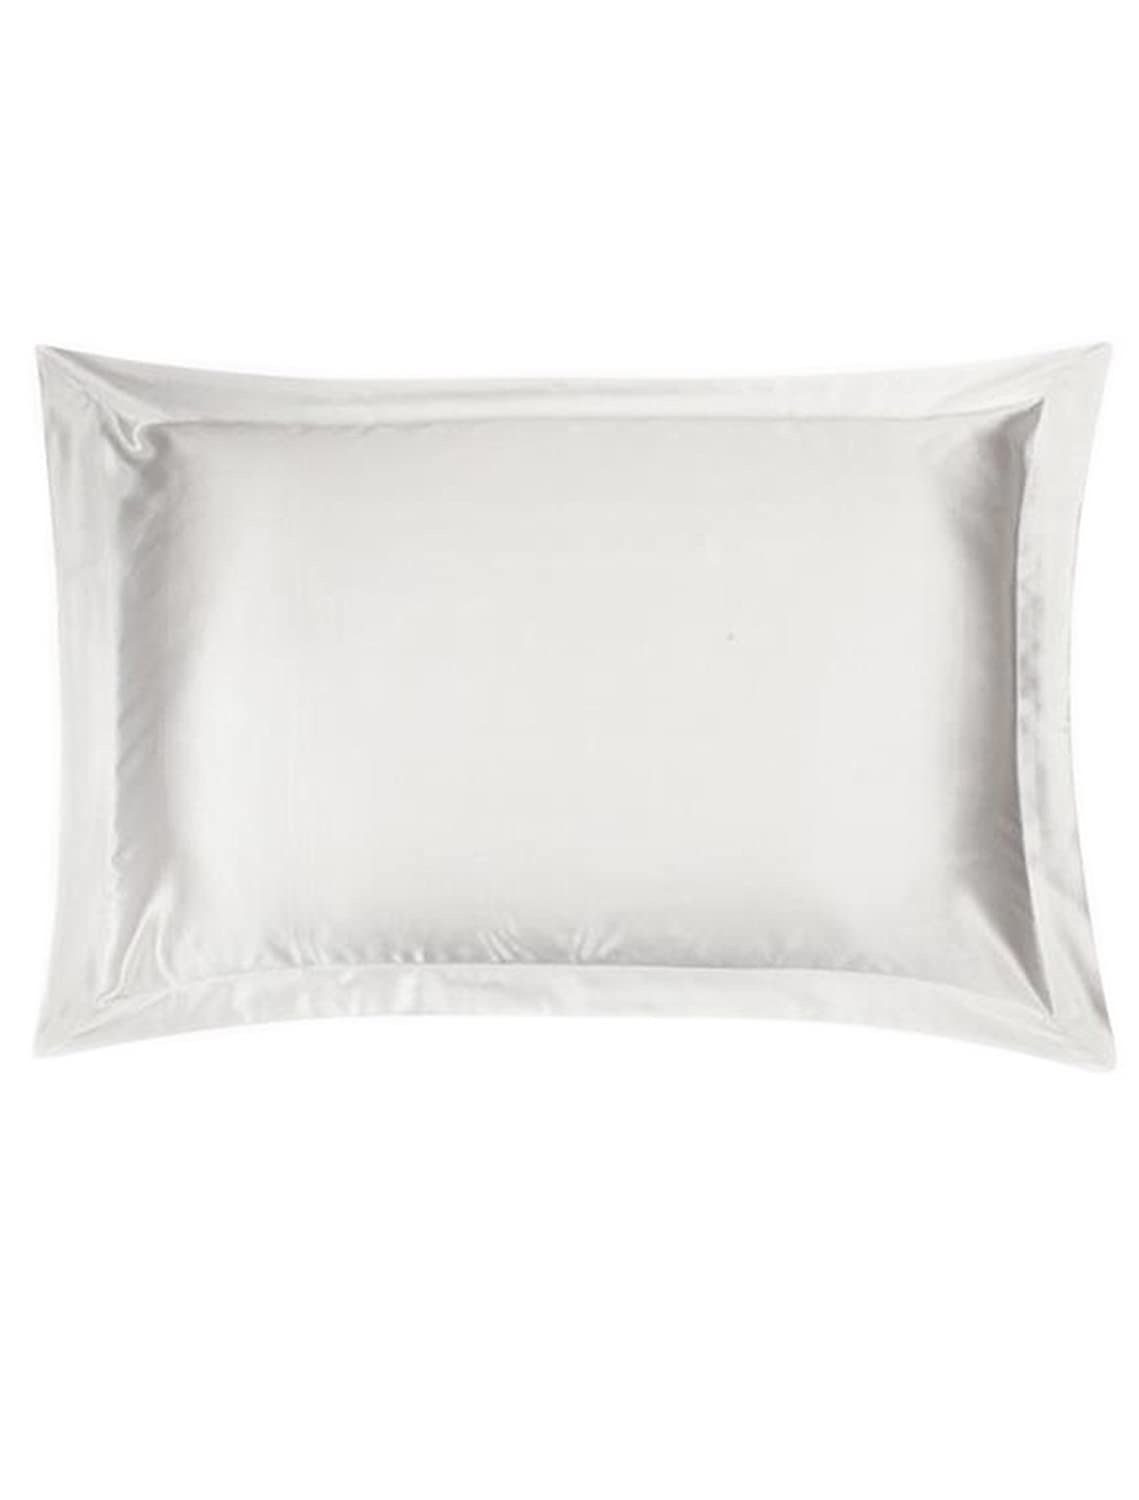 Ayiyoy 100% Mulberry Silk Pillowcase with Silky Underside Polyester White